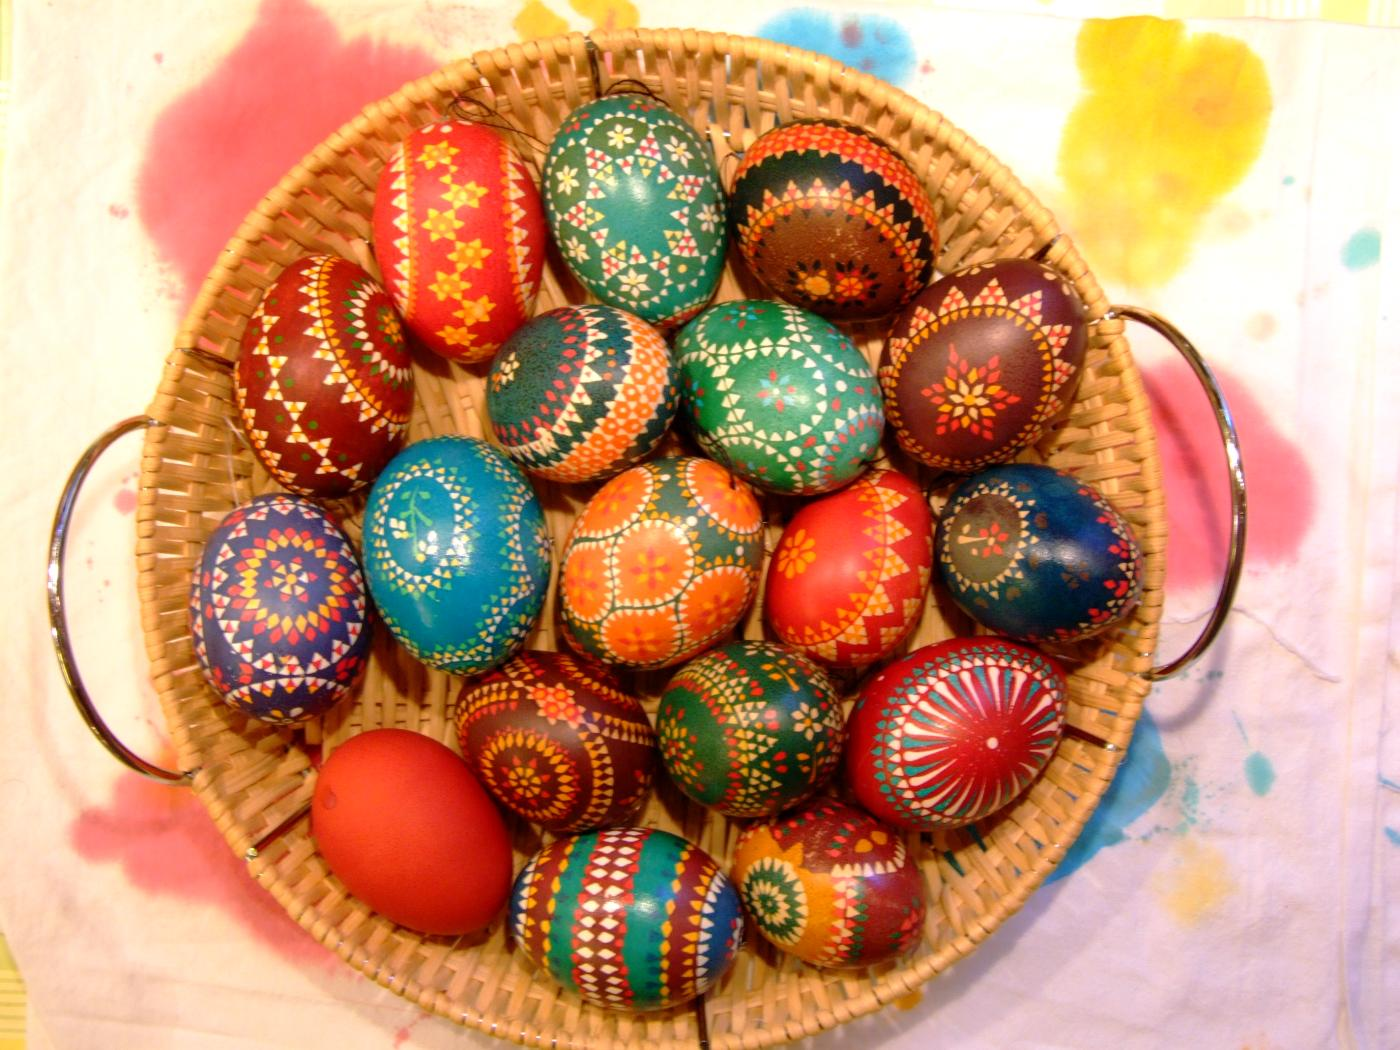 In Photos The Intricate Art Of Easter Egg Painting